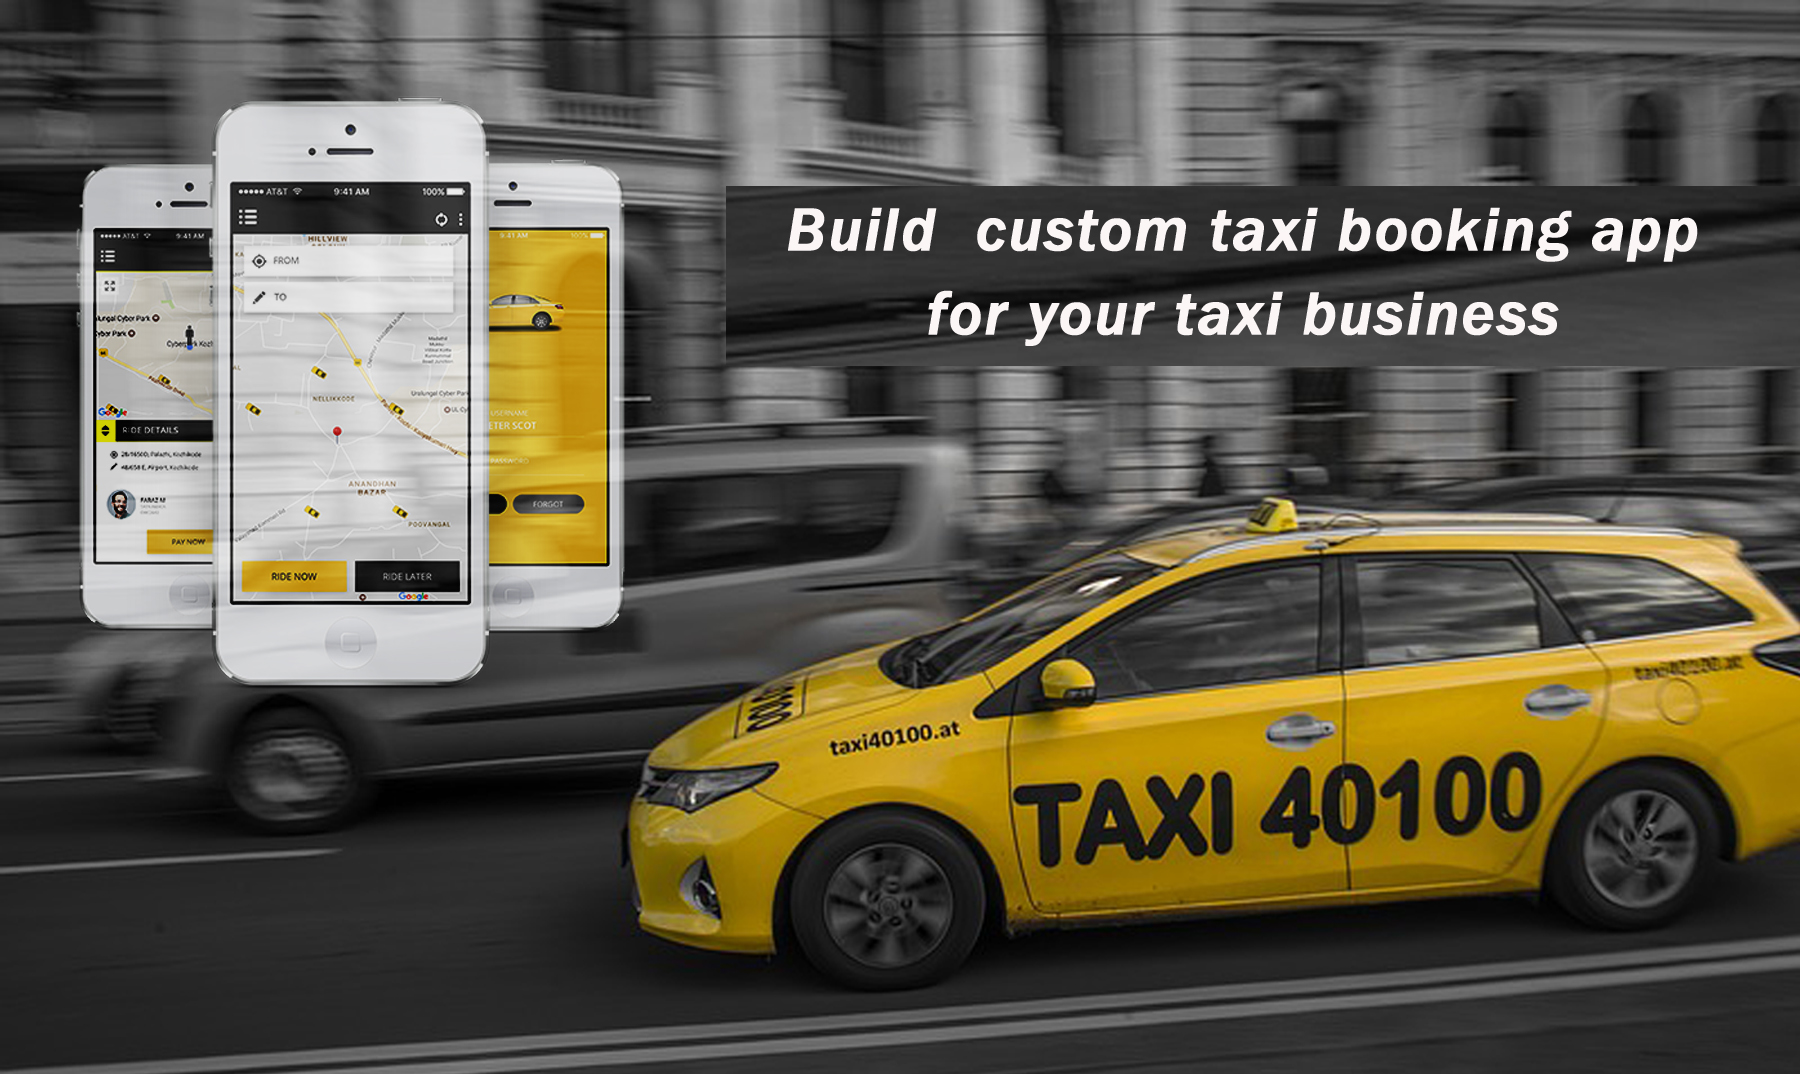 taxi booking app development for taxi business